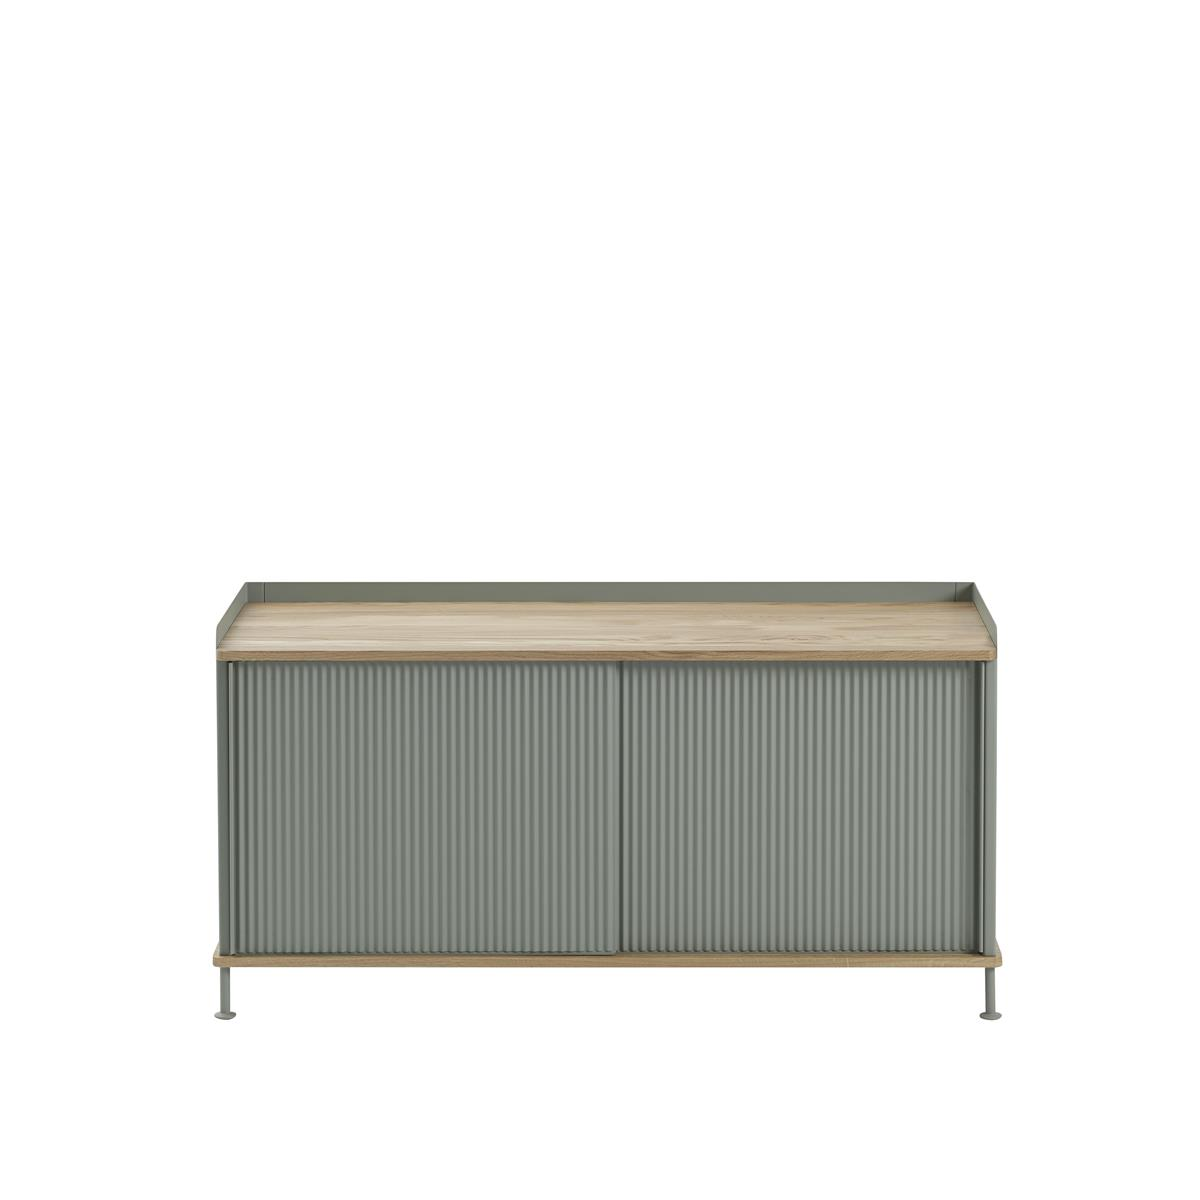 Enfold Sideboard Low - Oak / Dusty Green